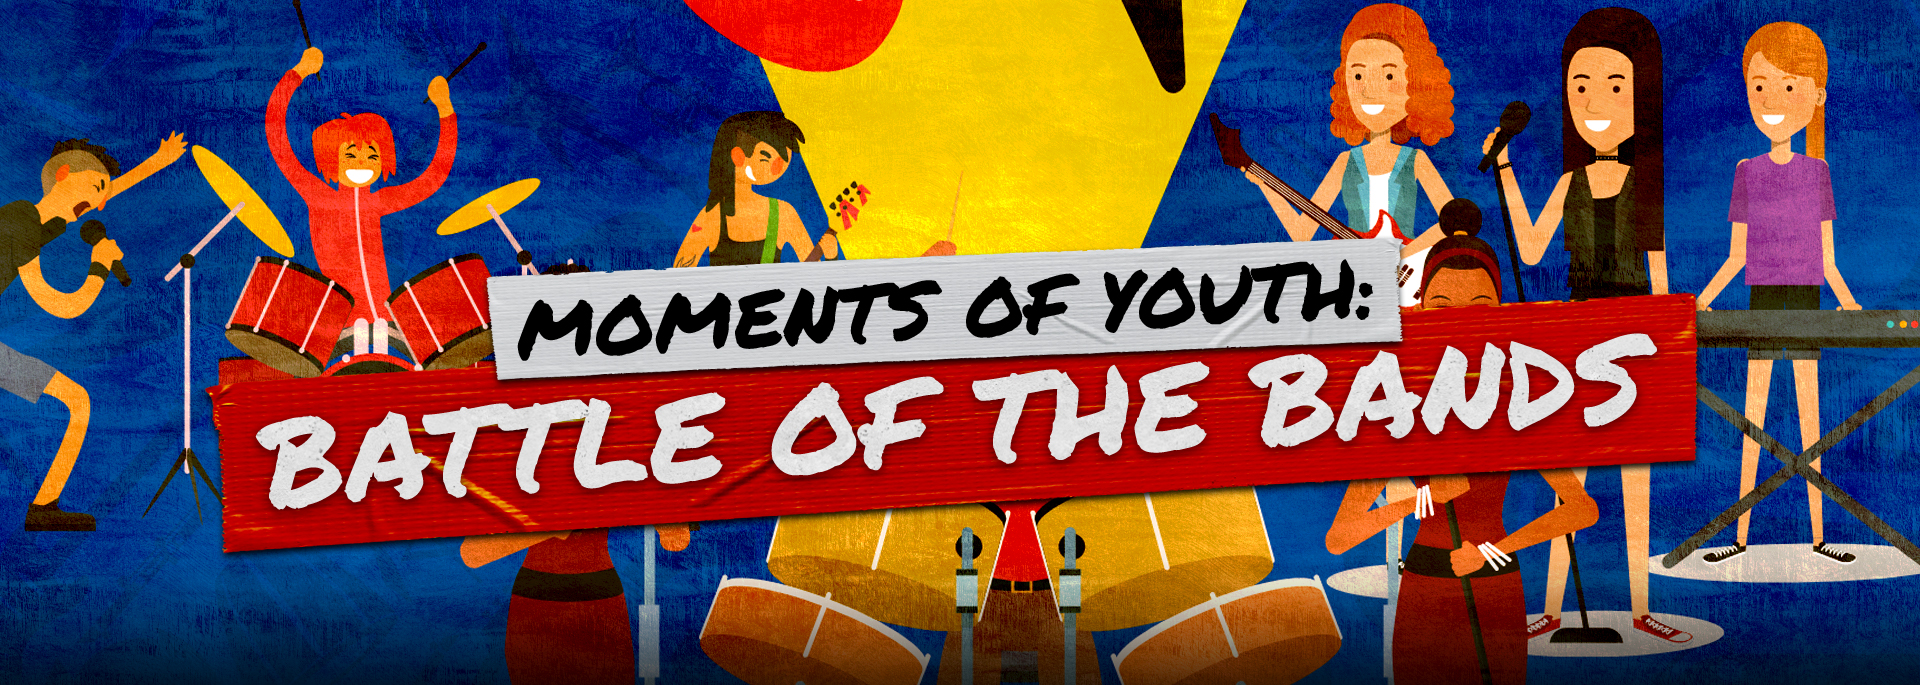 Moments of Youth: Battle of the Bands